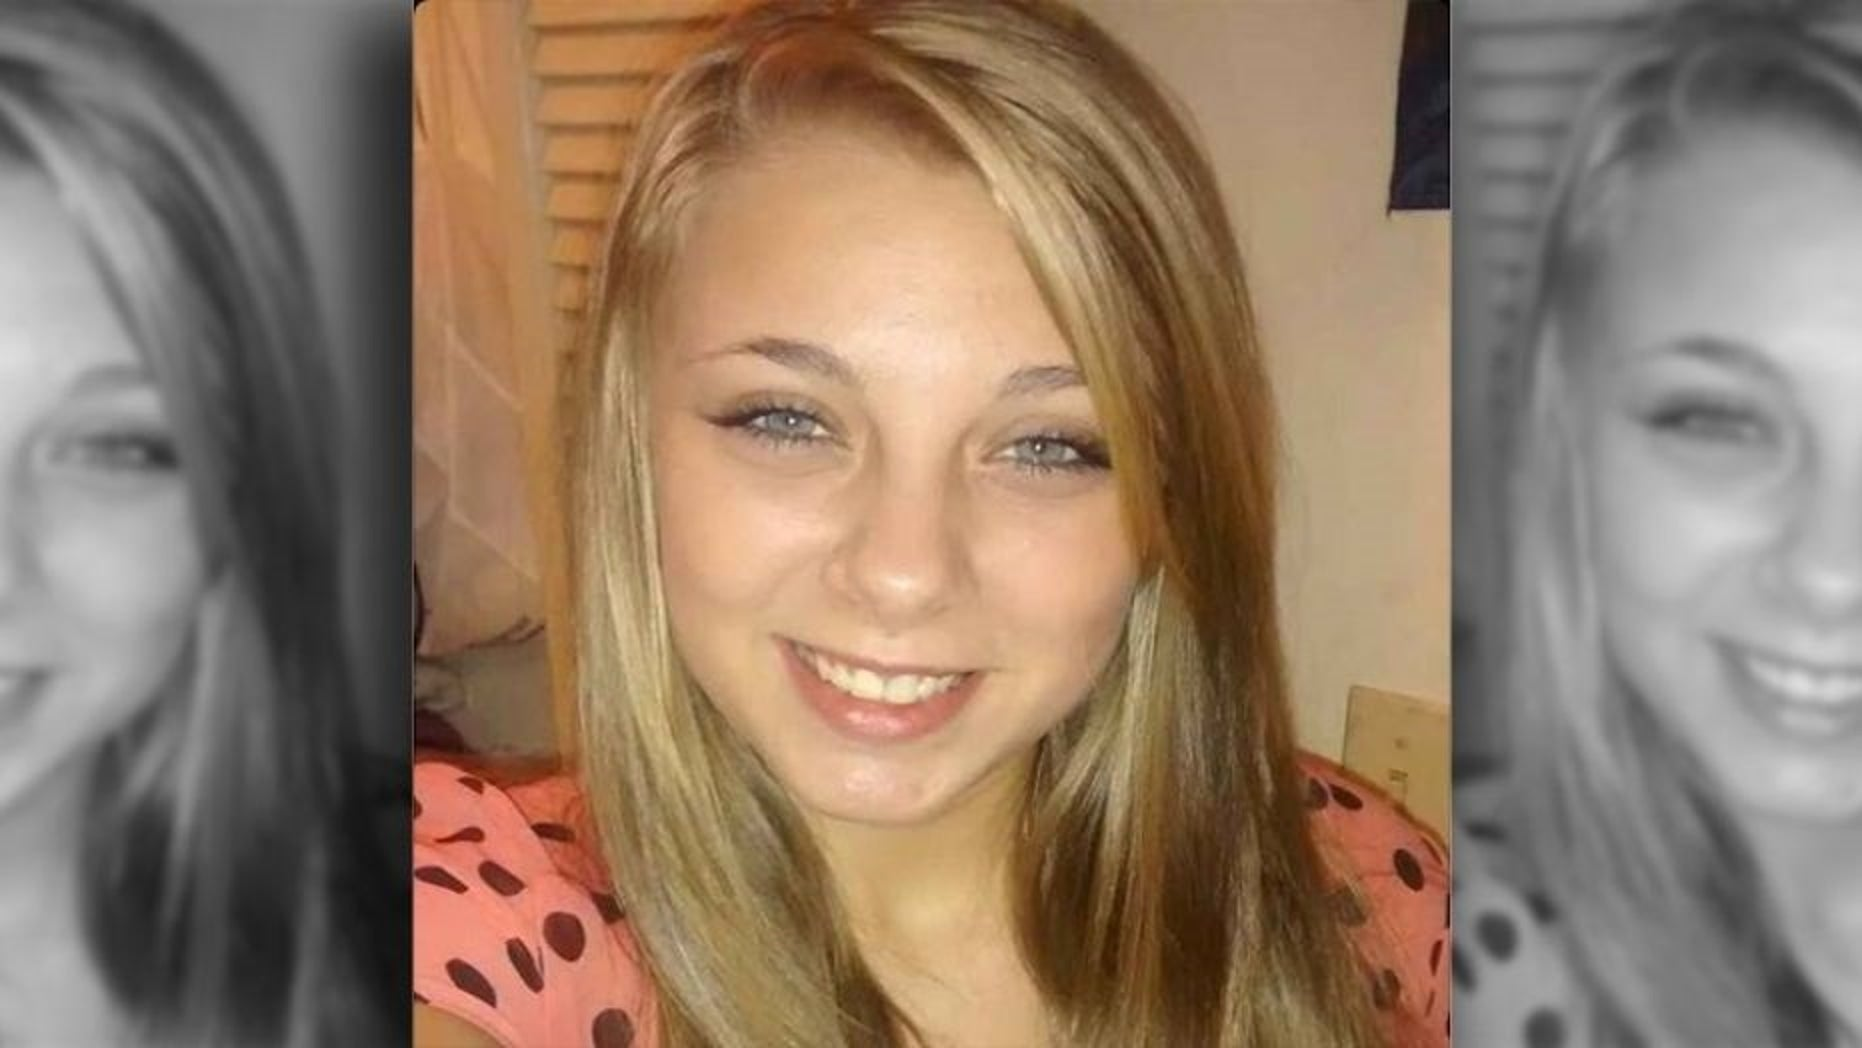 Kaylee Muthart speaks out on her drug abuse and what led her to gouge her eyes out last month.